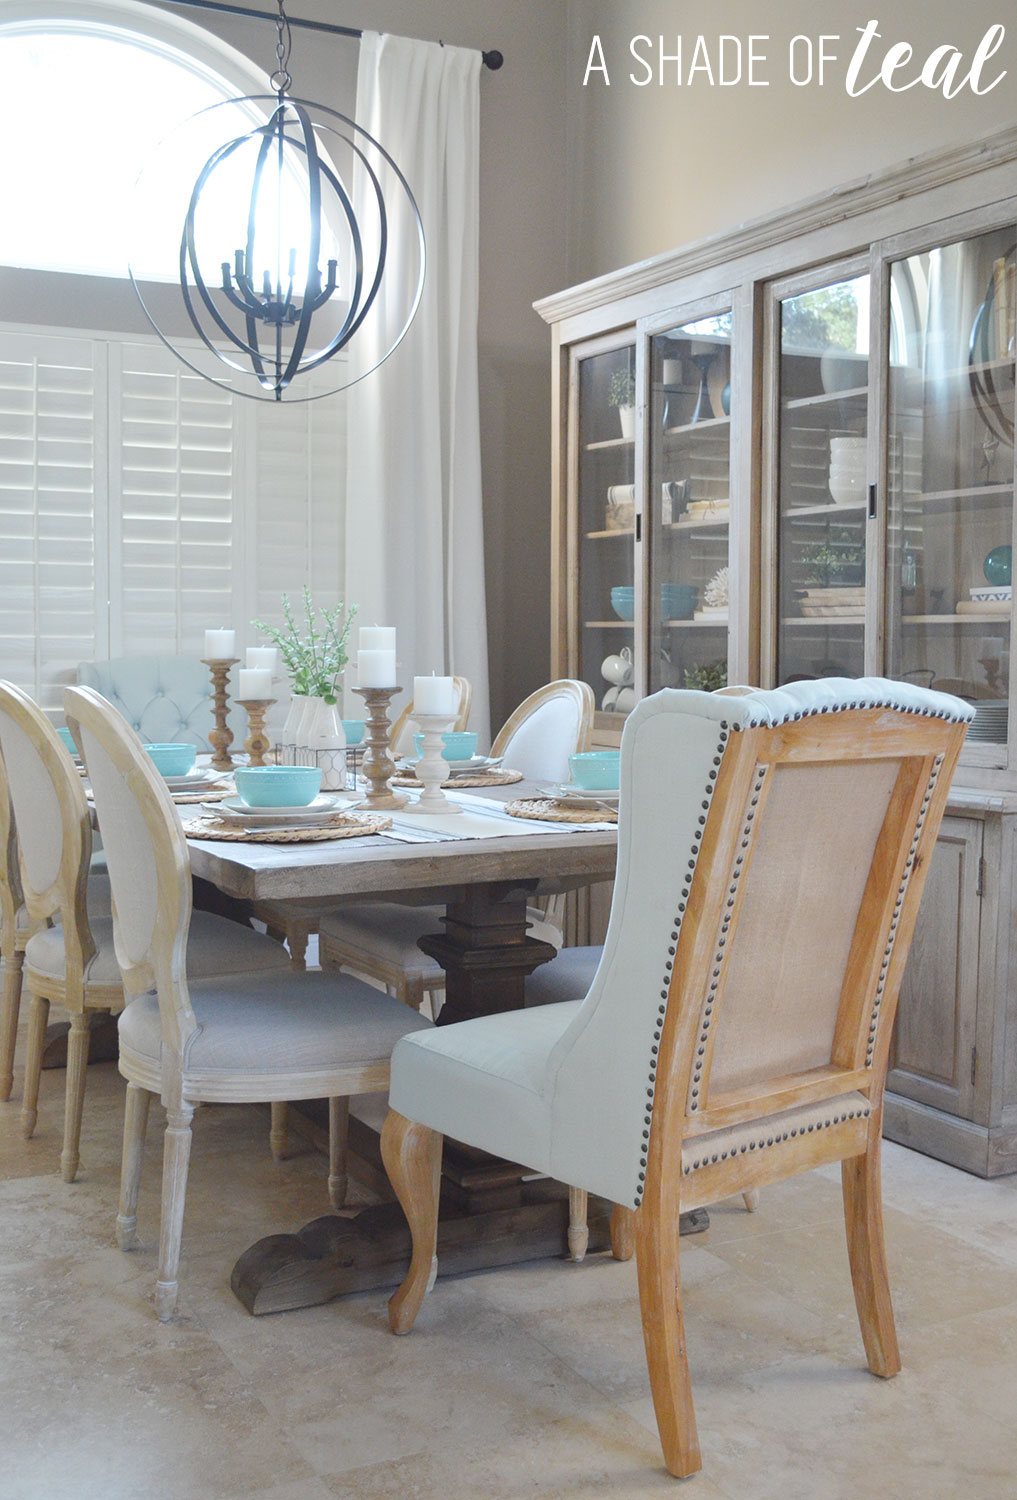 Home Projects A Shade Of Teal Modern Rustic Dining Room